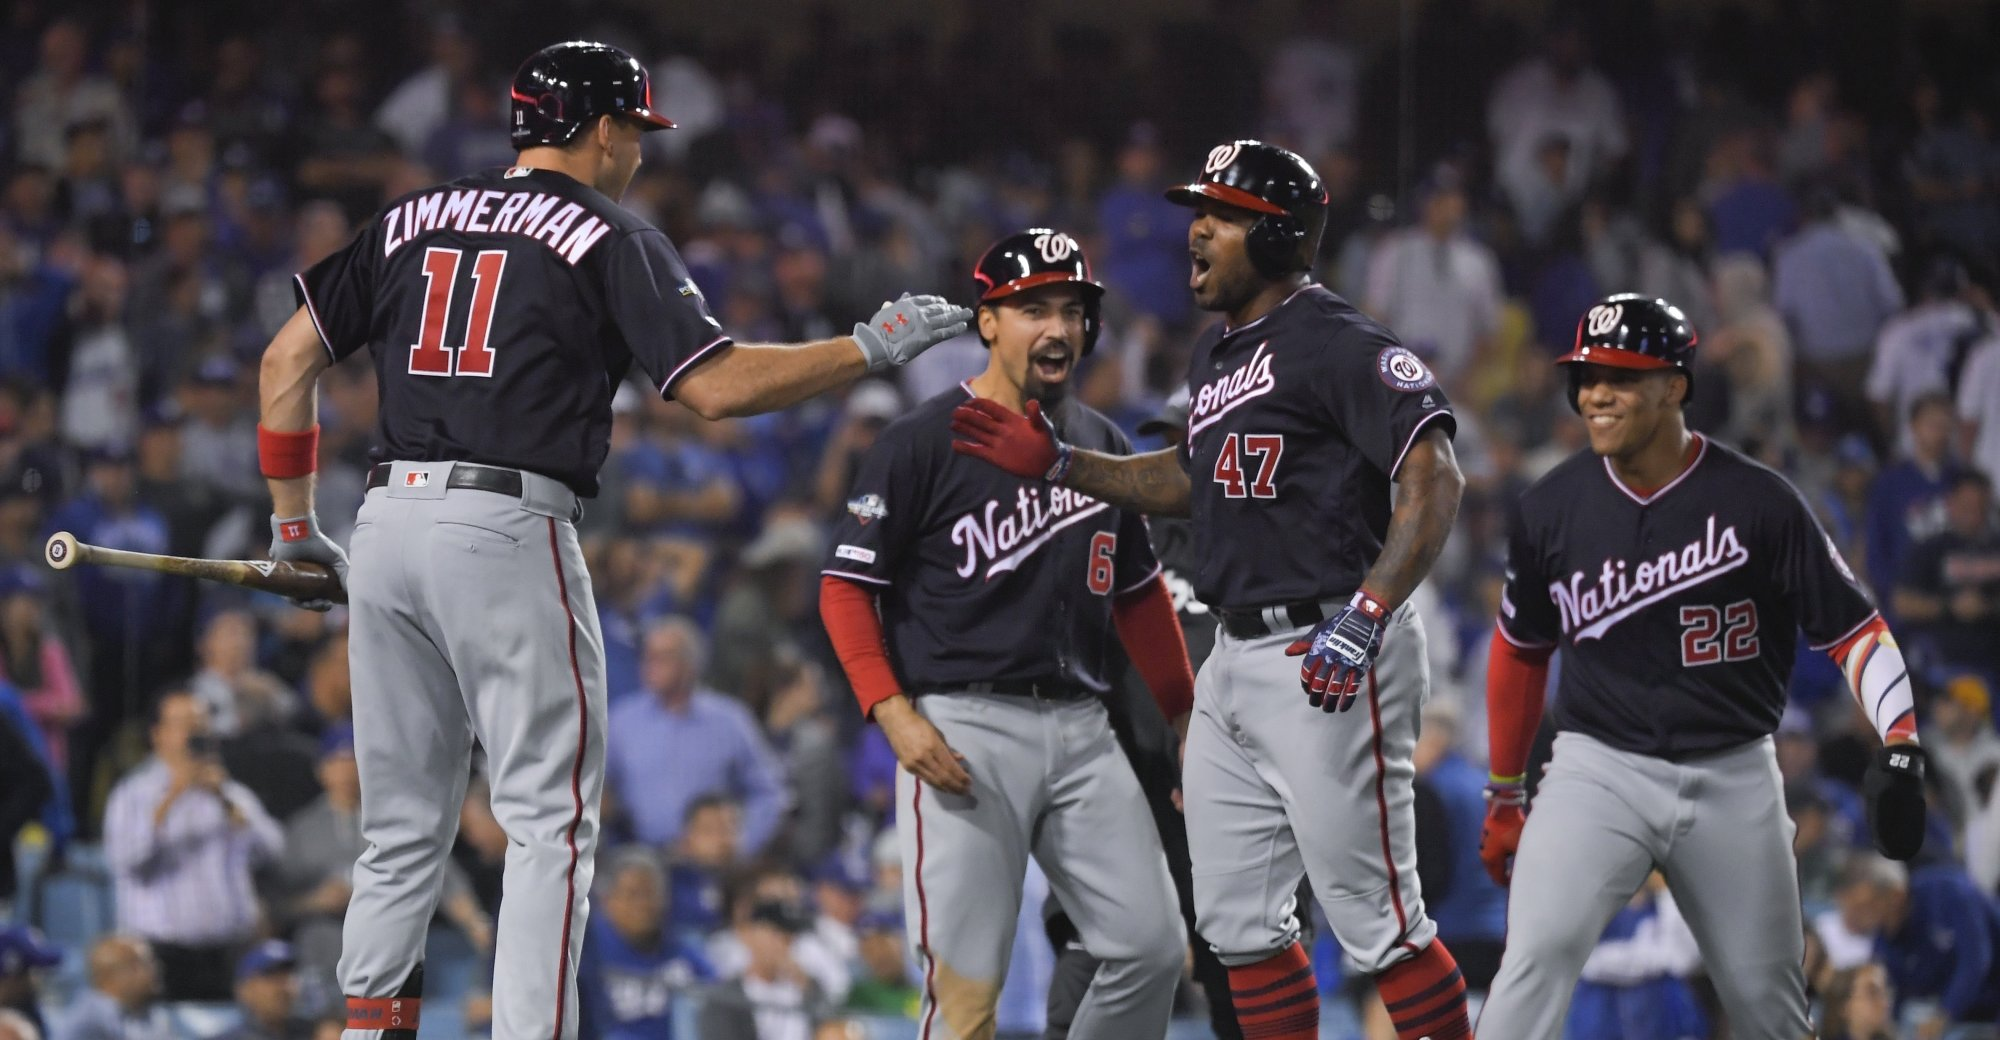 7 biggest plays that got the Nationals to World Series